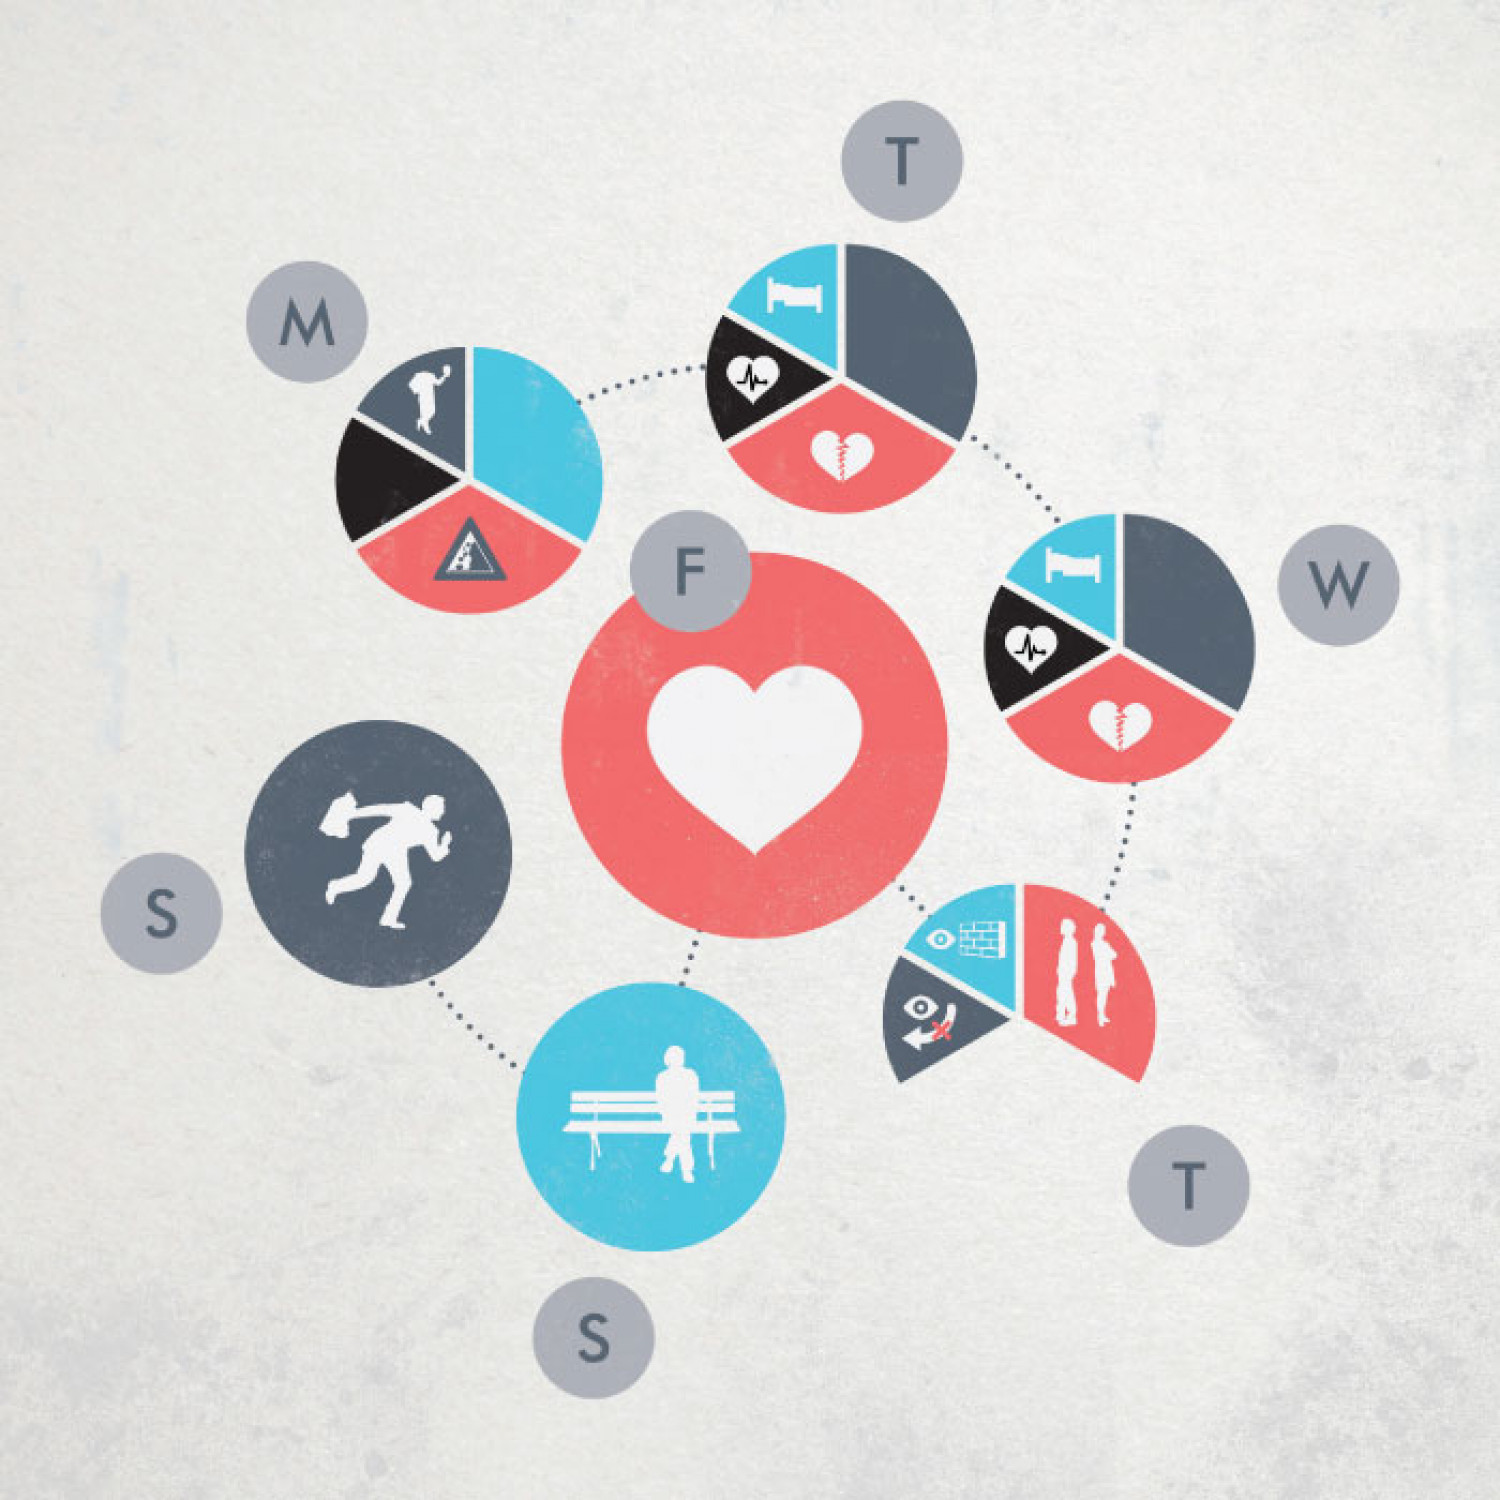 Friday, I'm in love Infographic